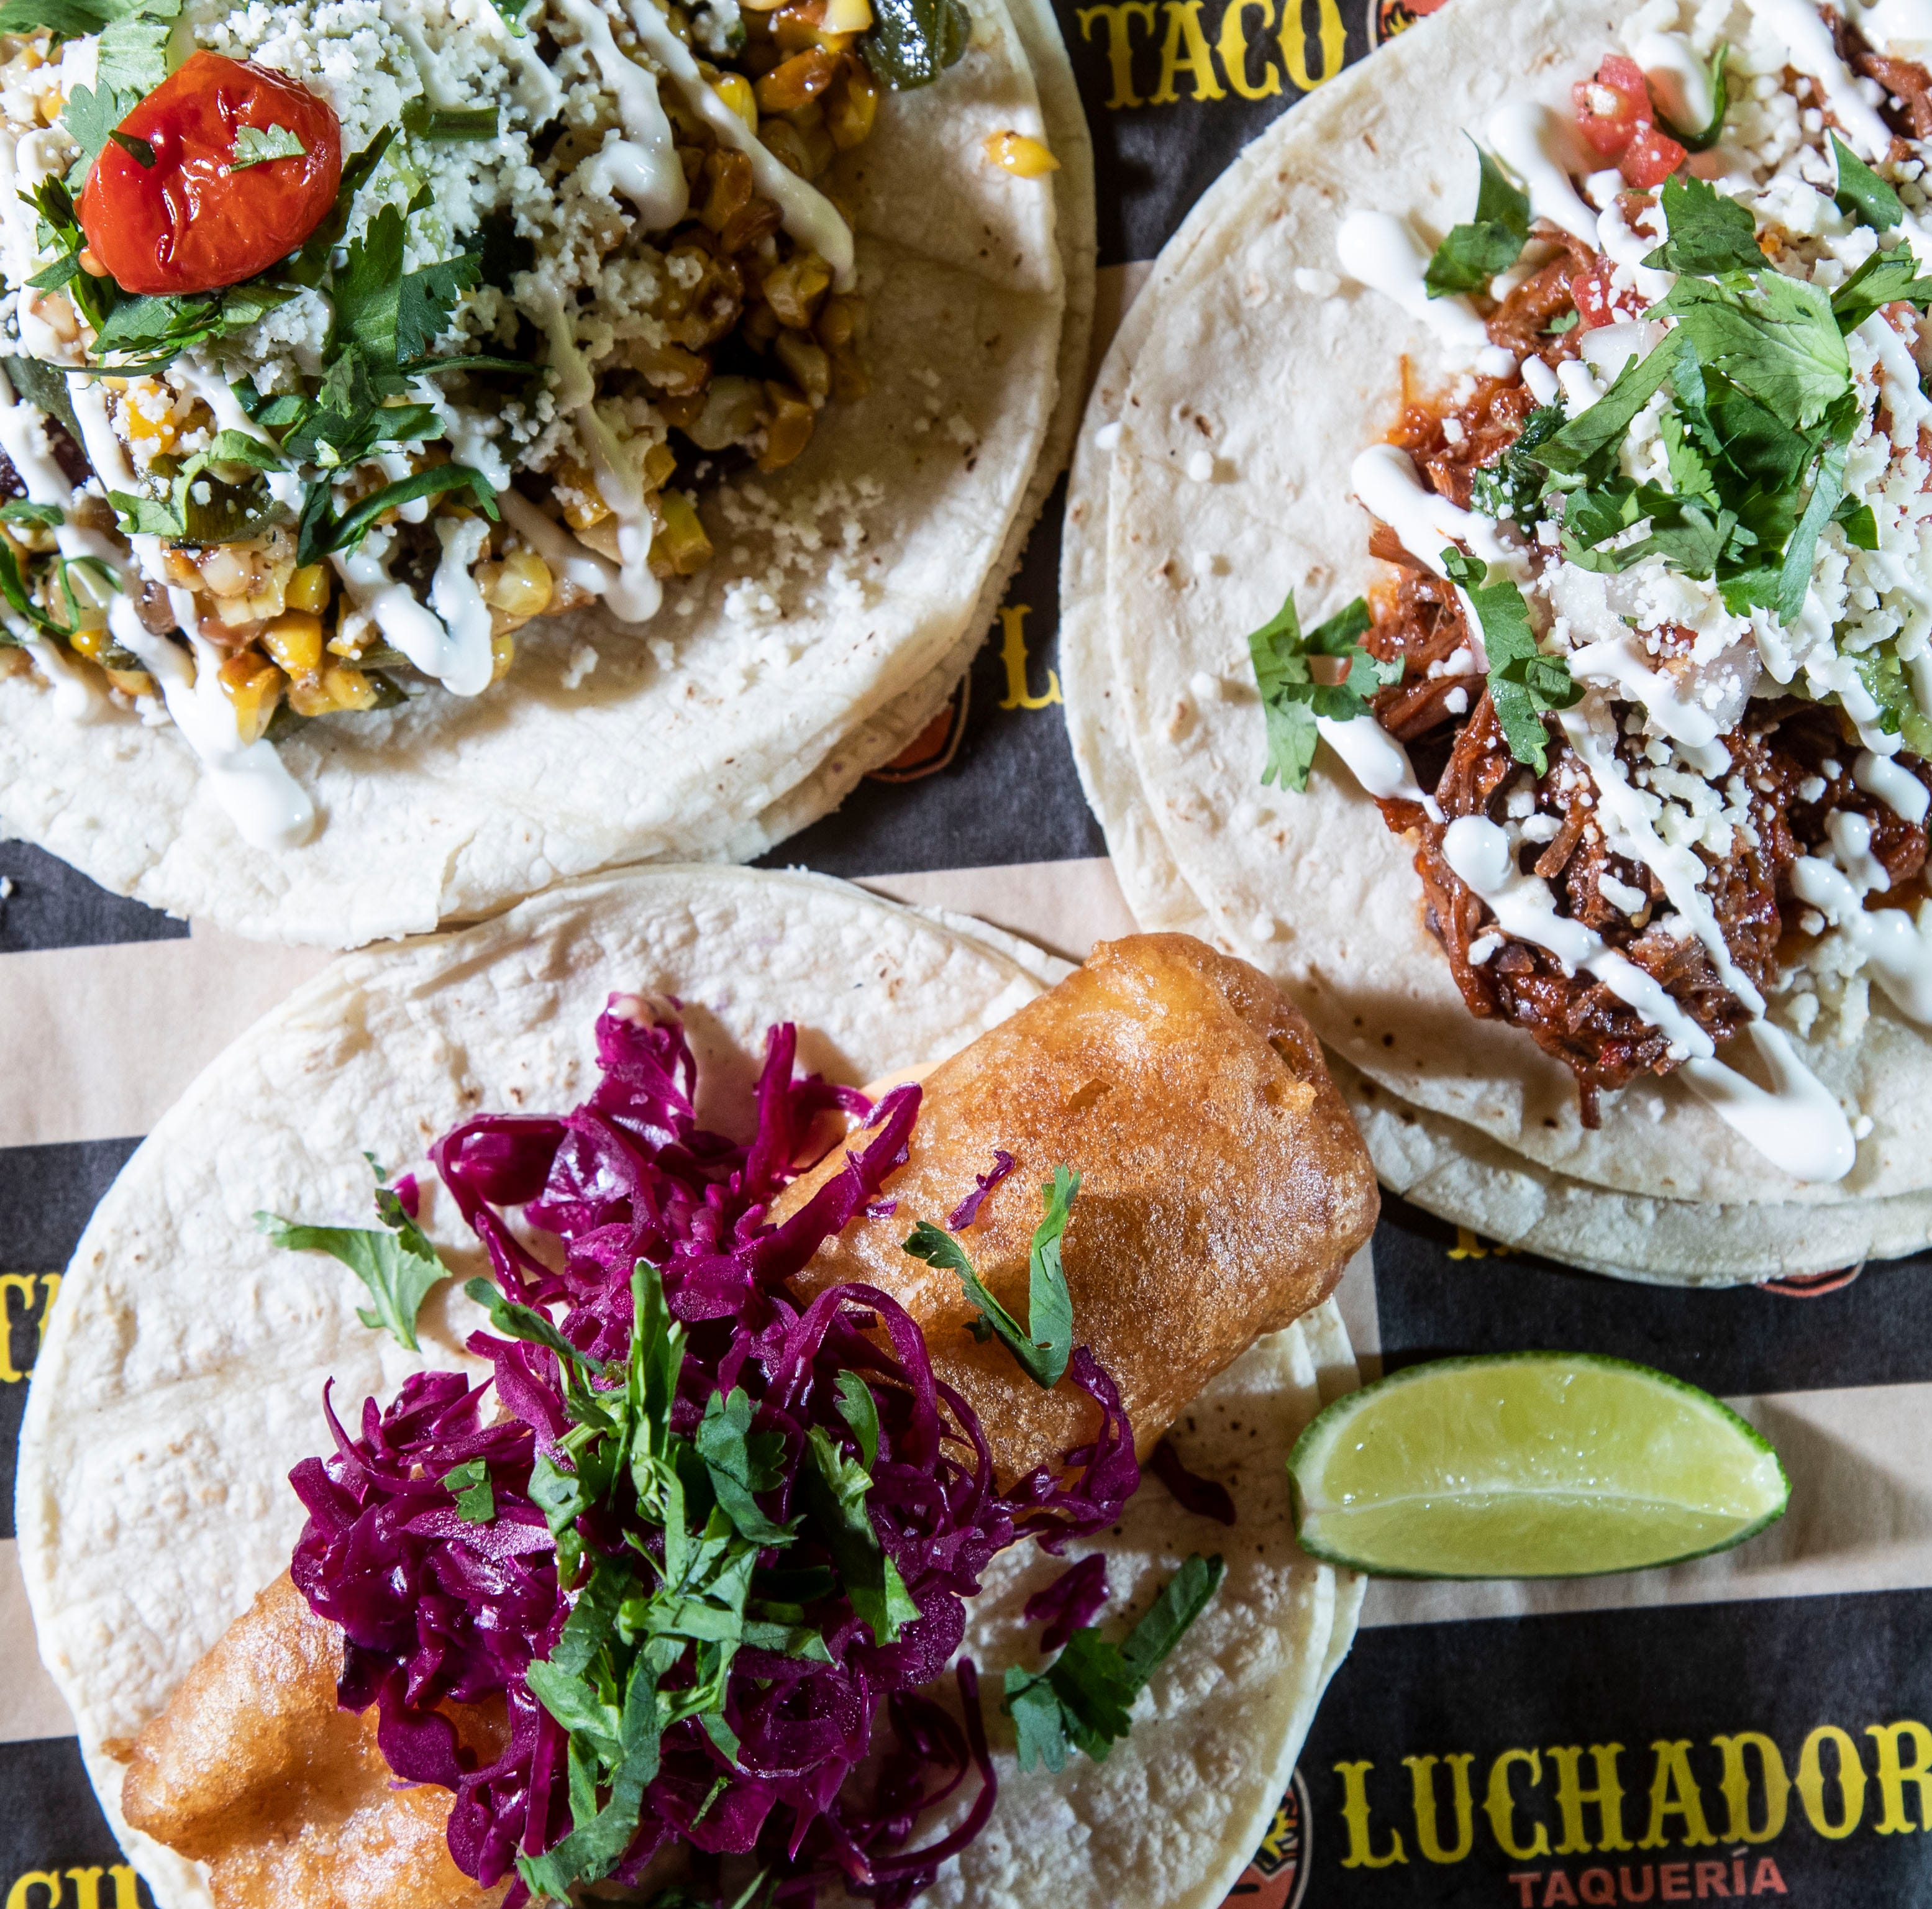 Taco Luchador offers 'exceptional' fare for Louisville taco lovers